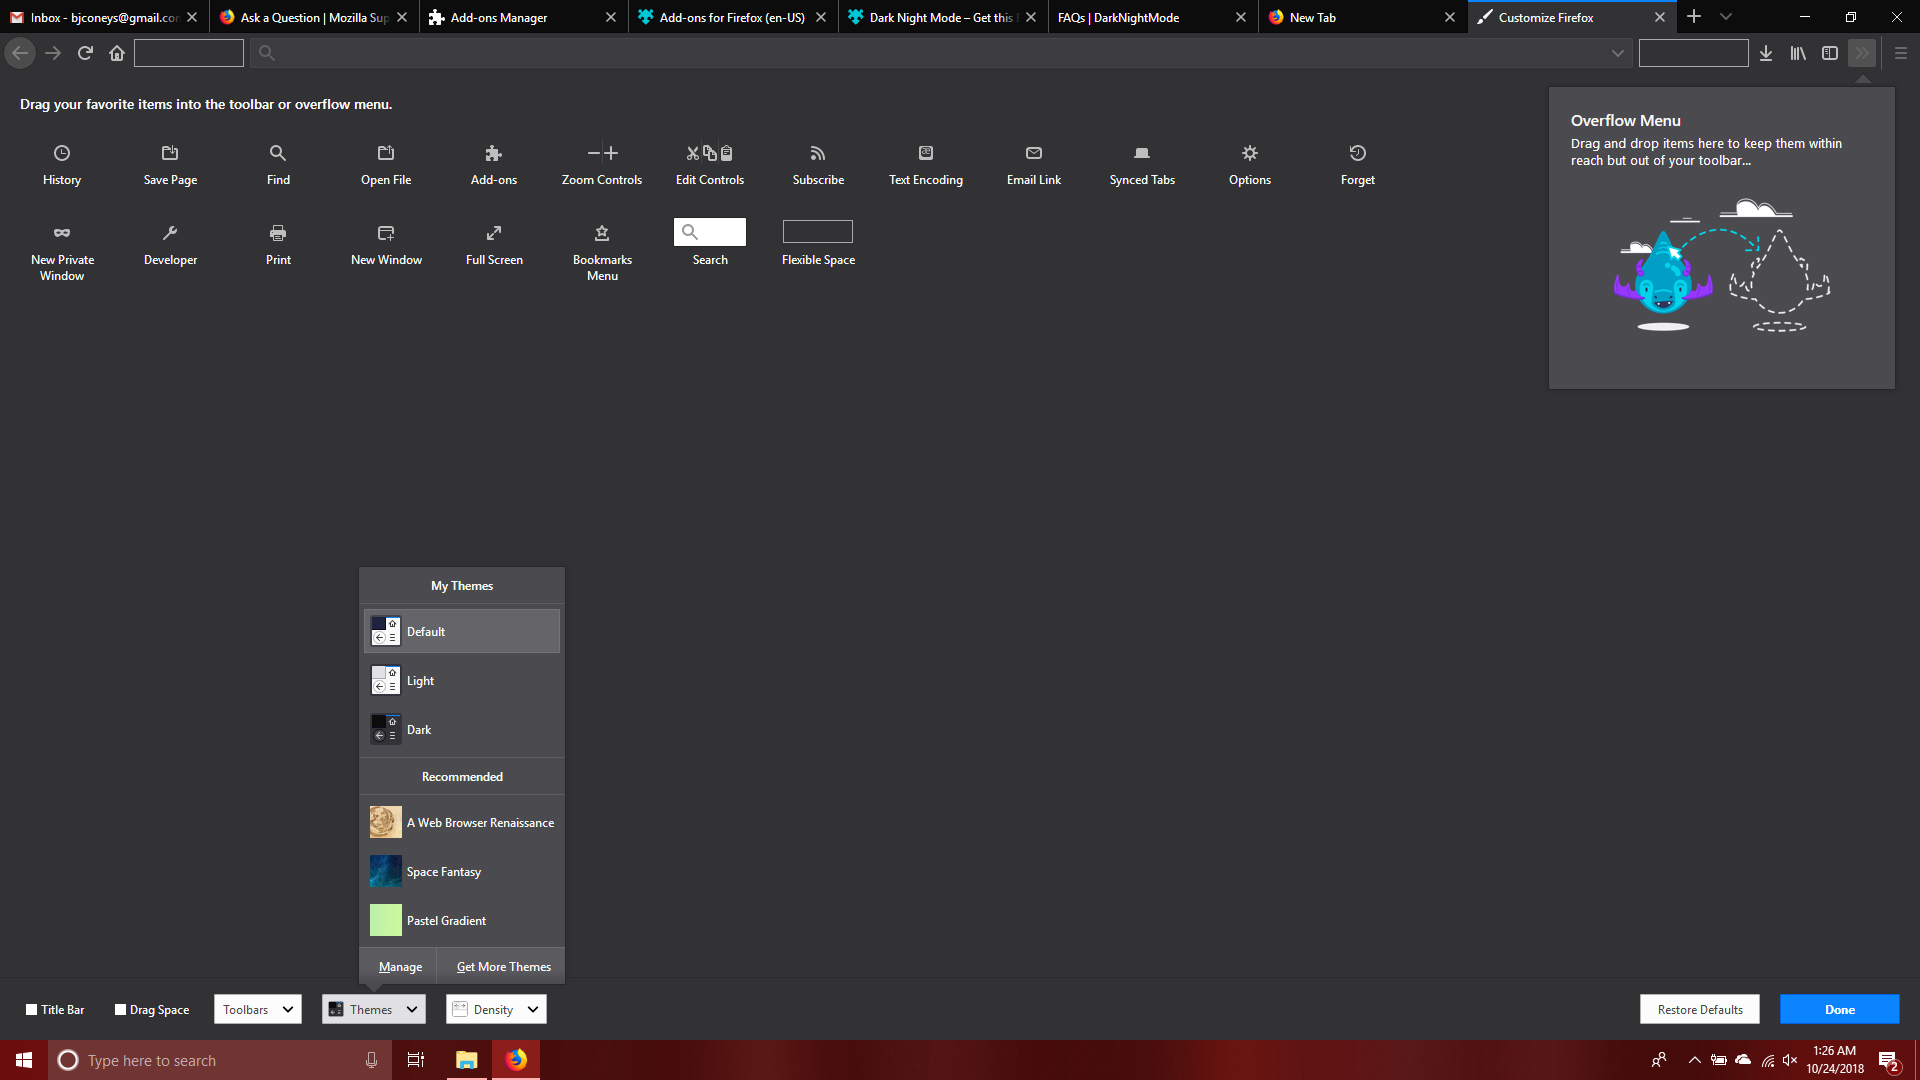 Default Theme Refuses To Load Properly And Looks Like The Dark